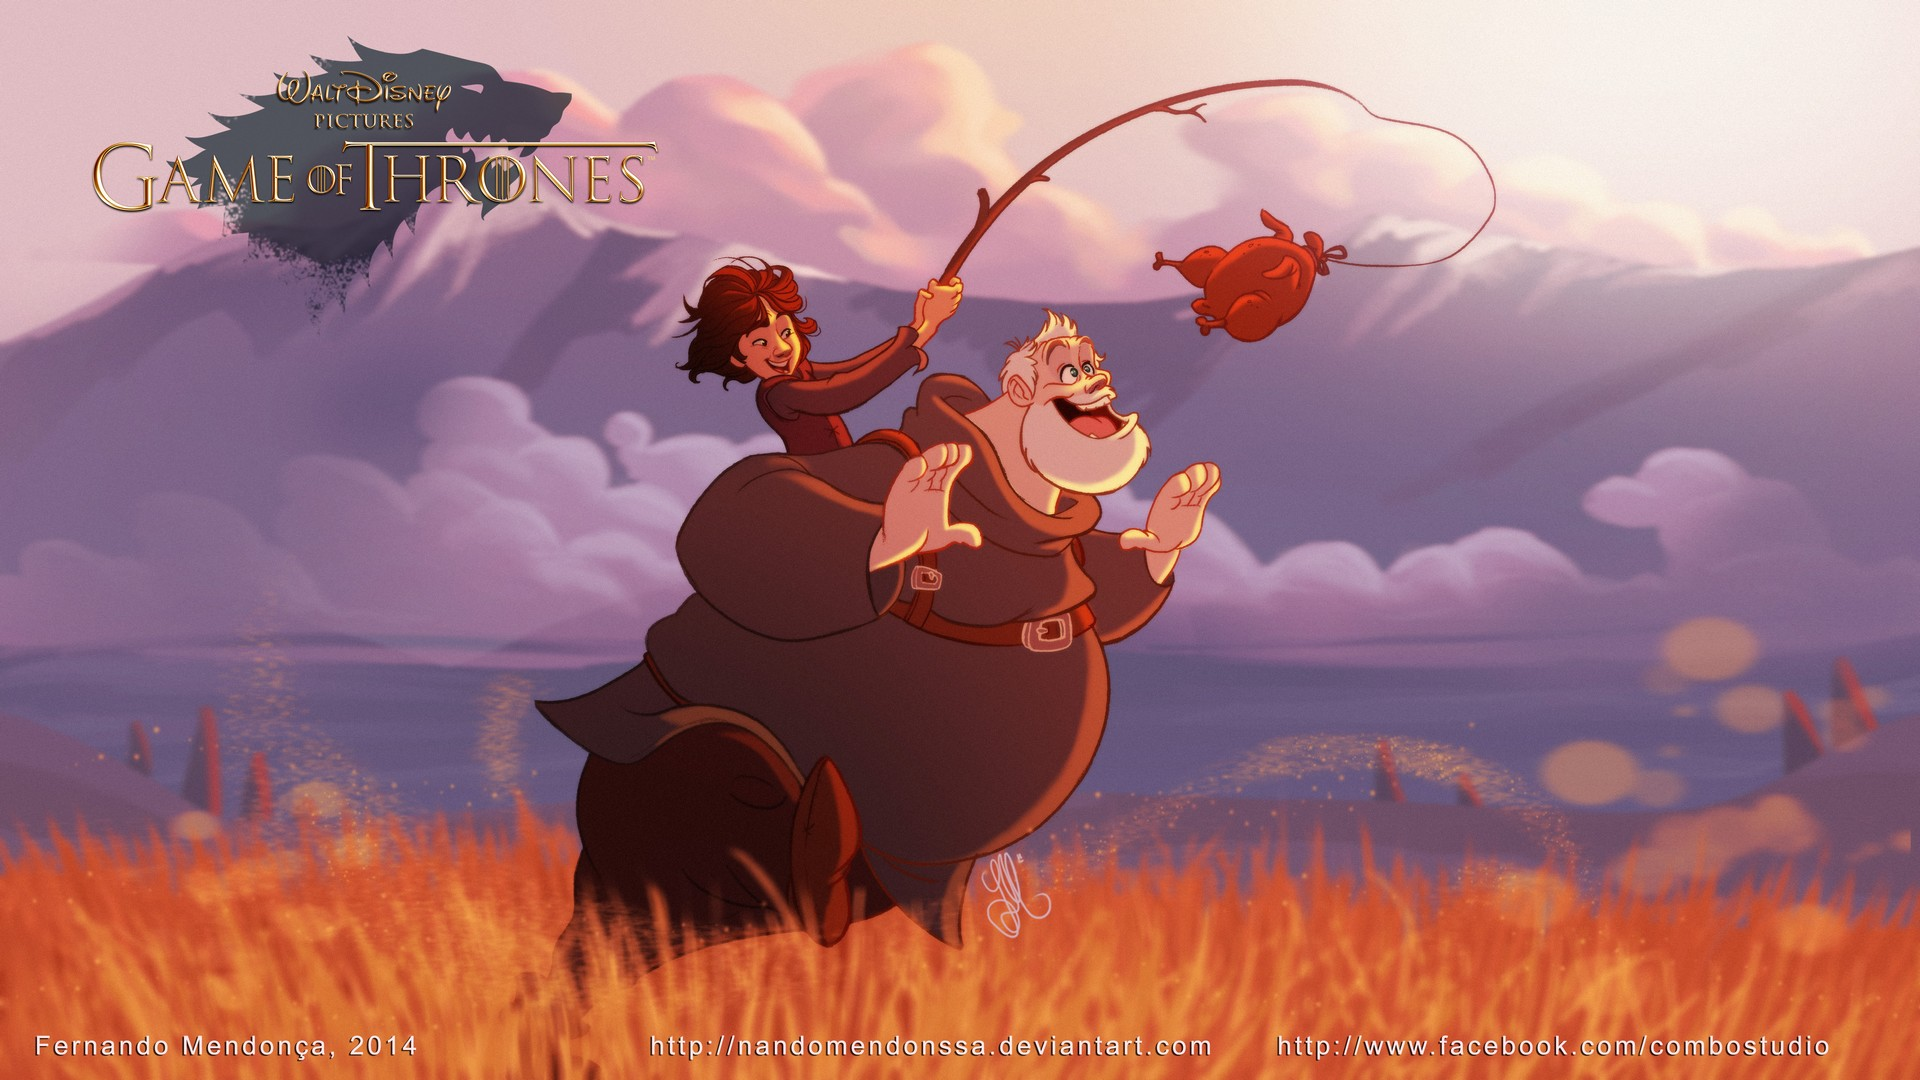 Game of Thrones Disney Bran and Hodor